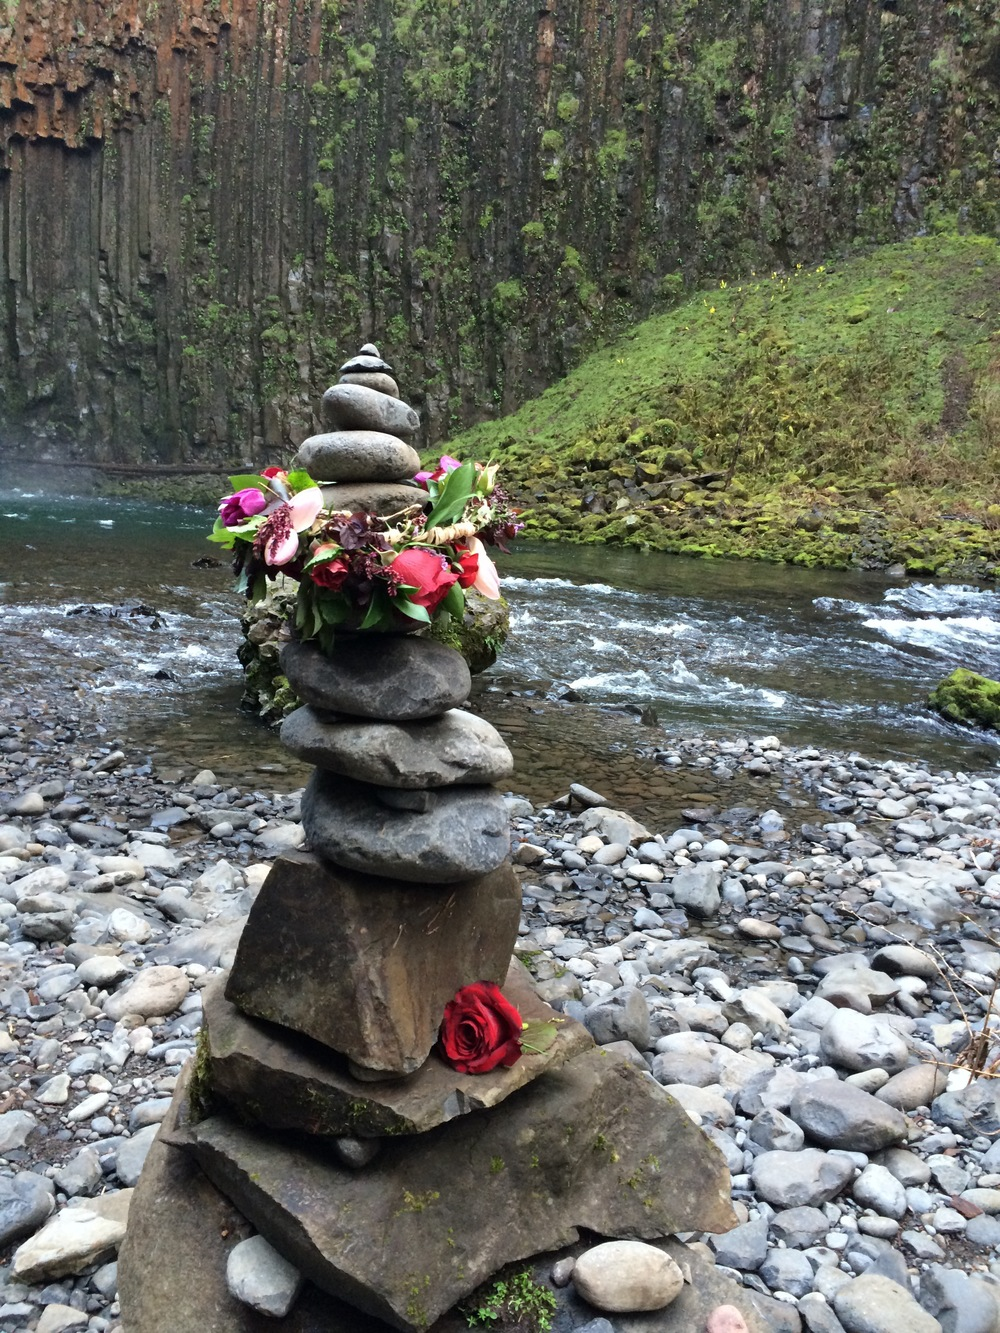 That flower crown was never going to make it back up the hill and home, so I left it as an offering on this wonderful monument that some previous adventurer had left behind